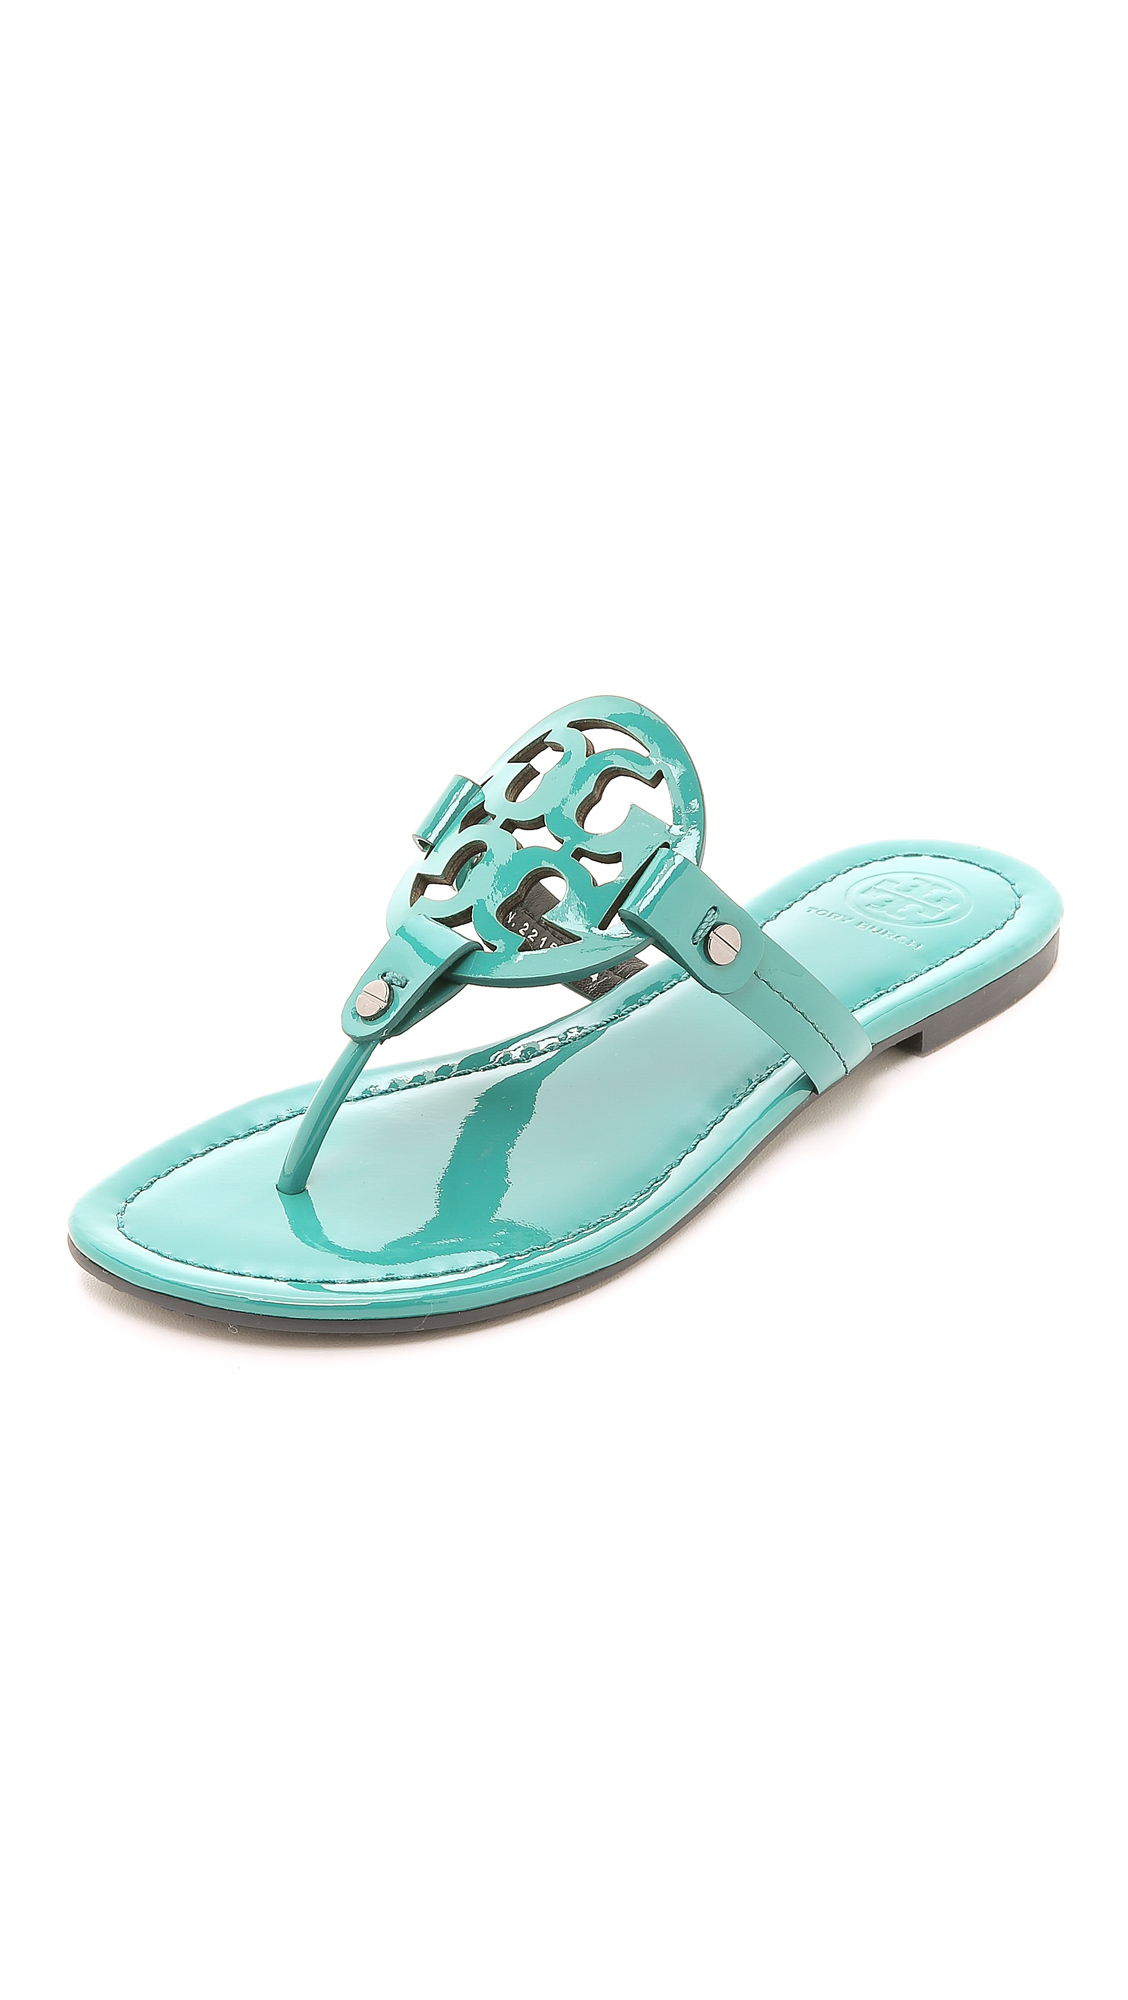 4b6797950c982c Lyst - Tory Burch Miller Thong Sandals - Electric Eel in Green